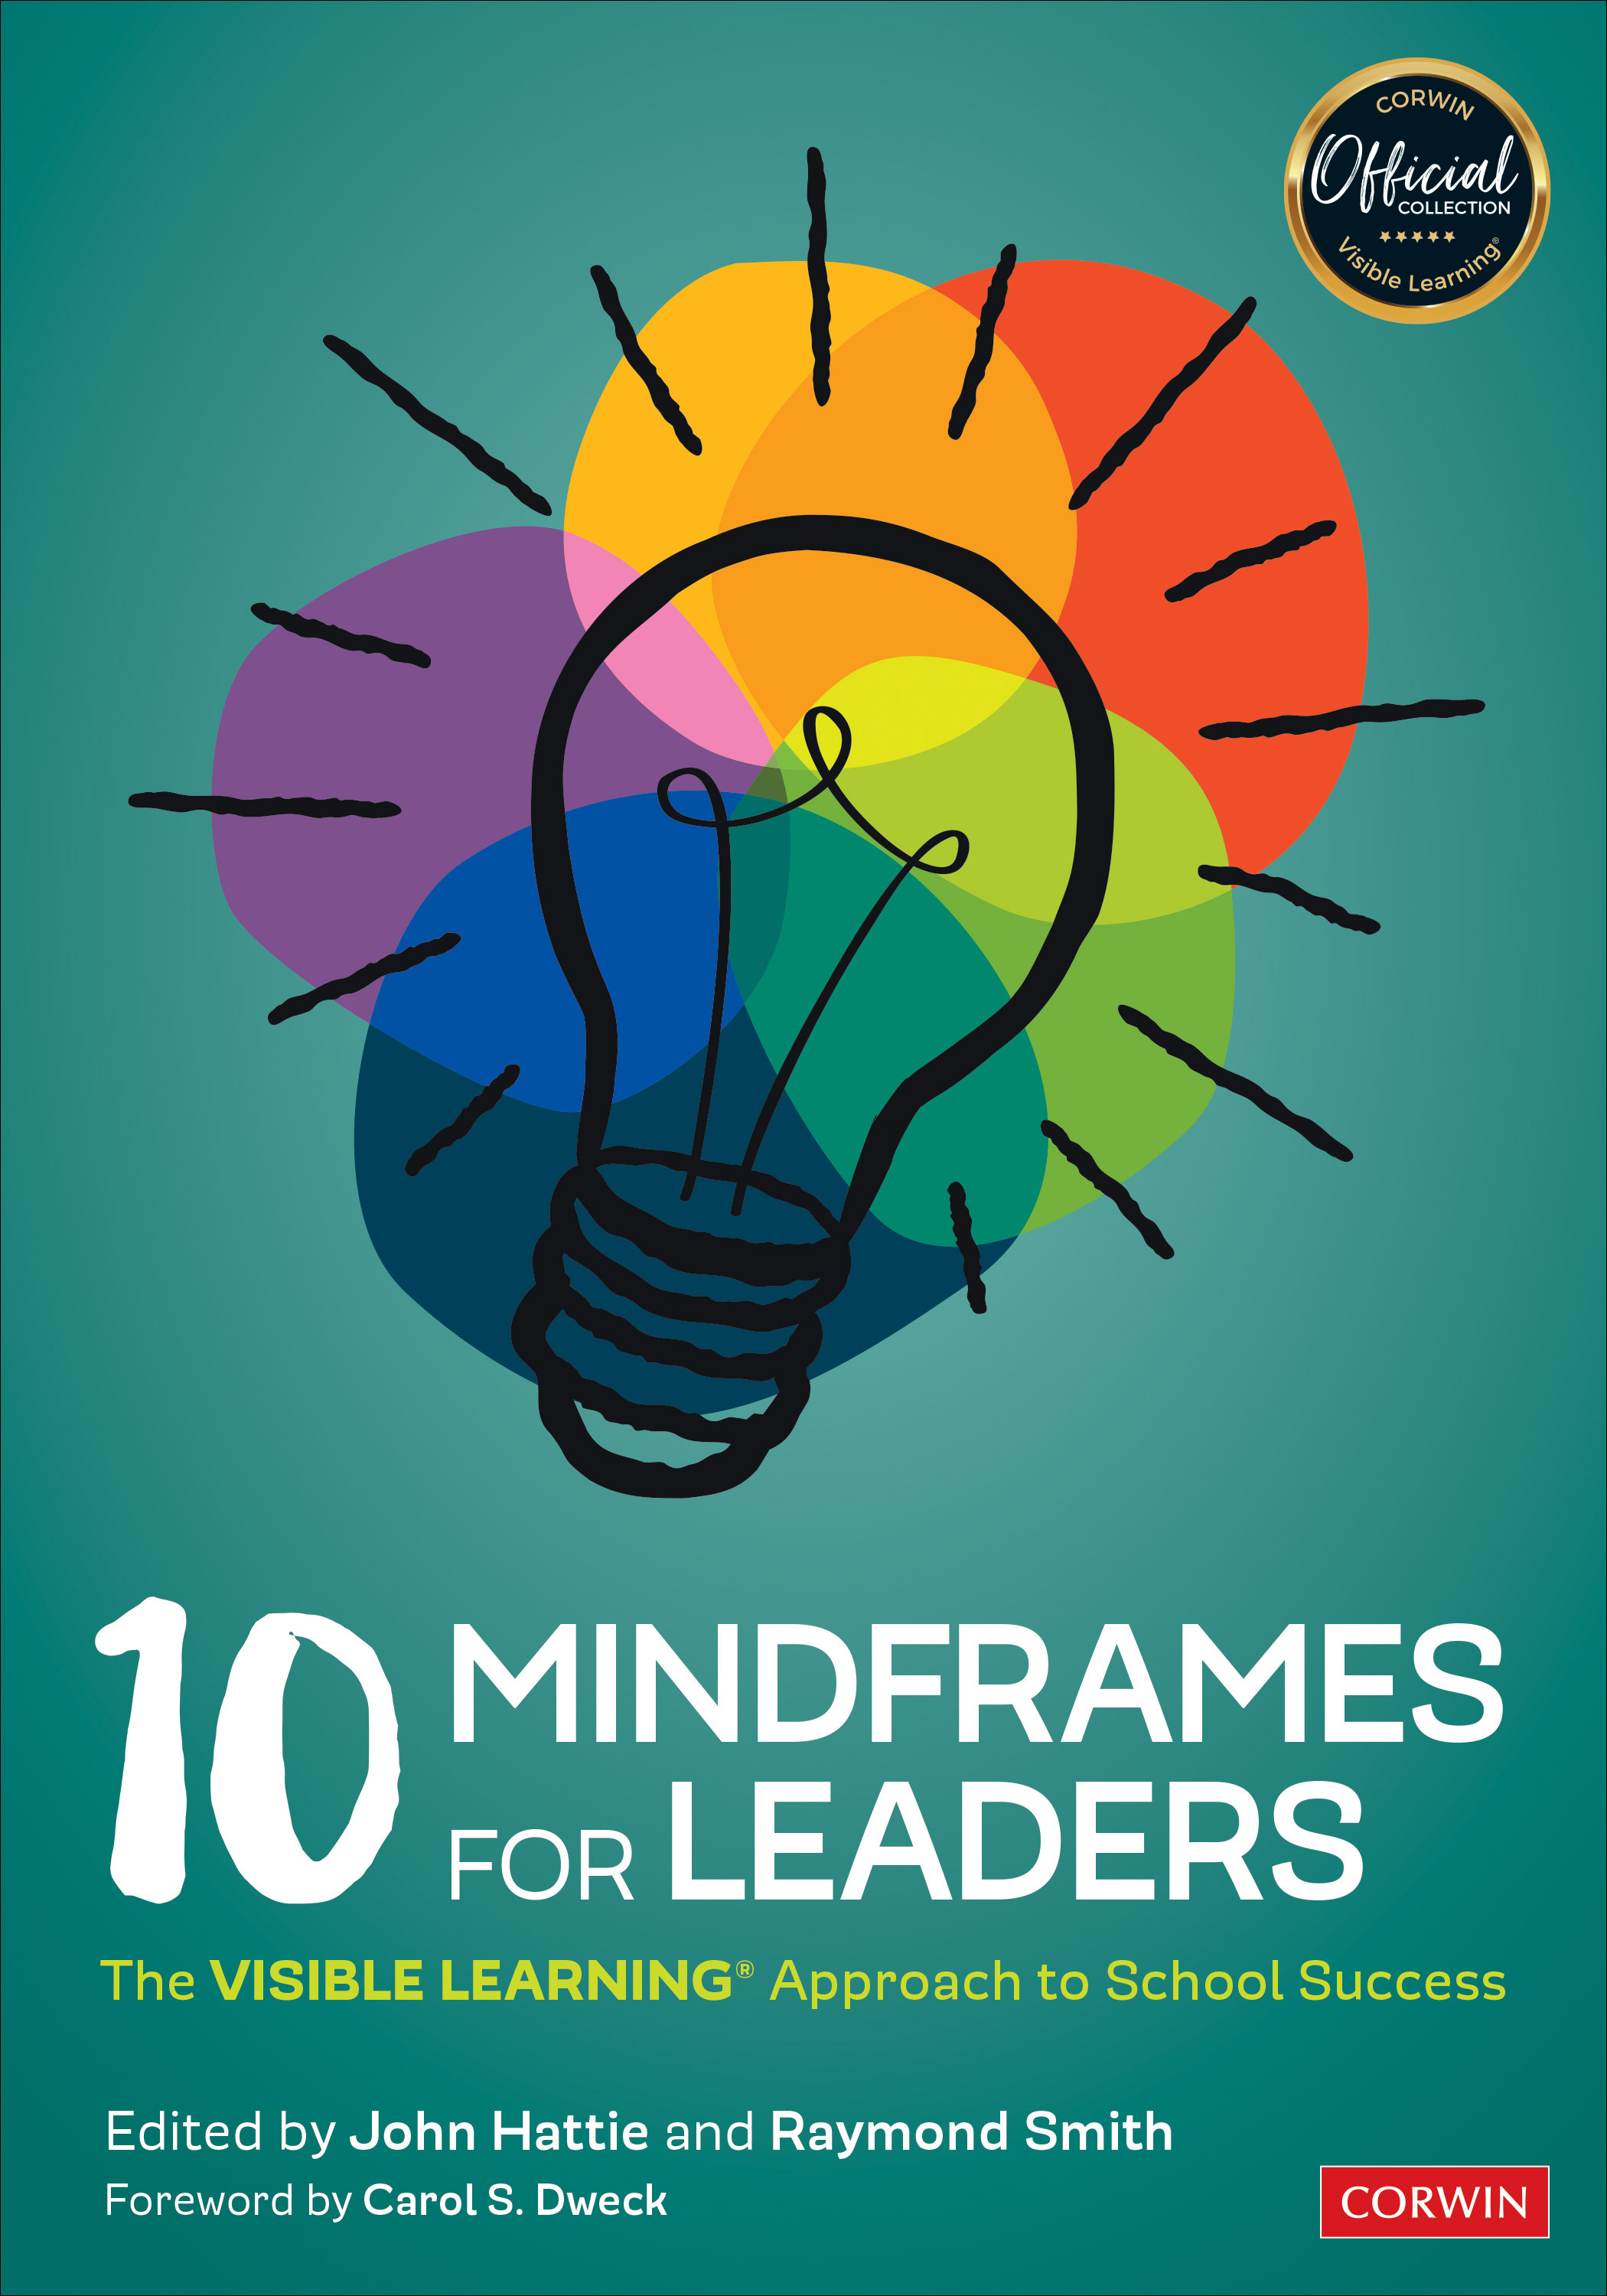 10 Mindframes for Leaders